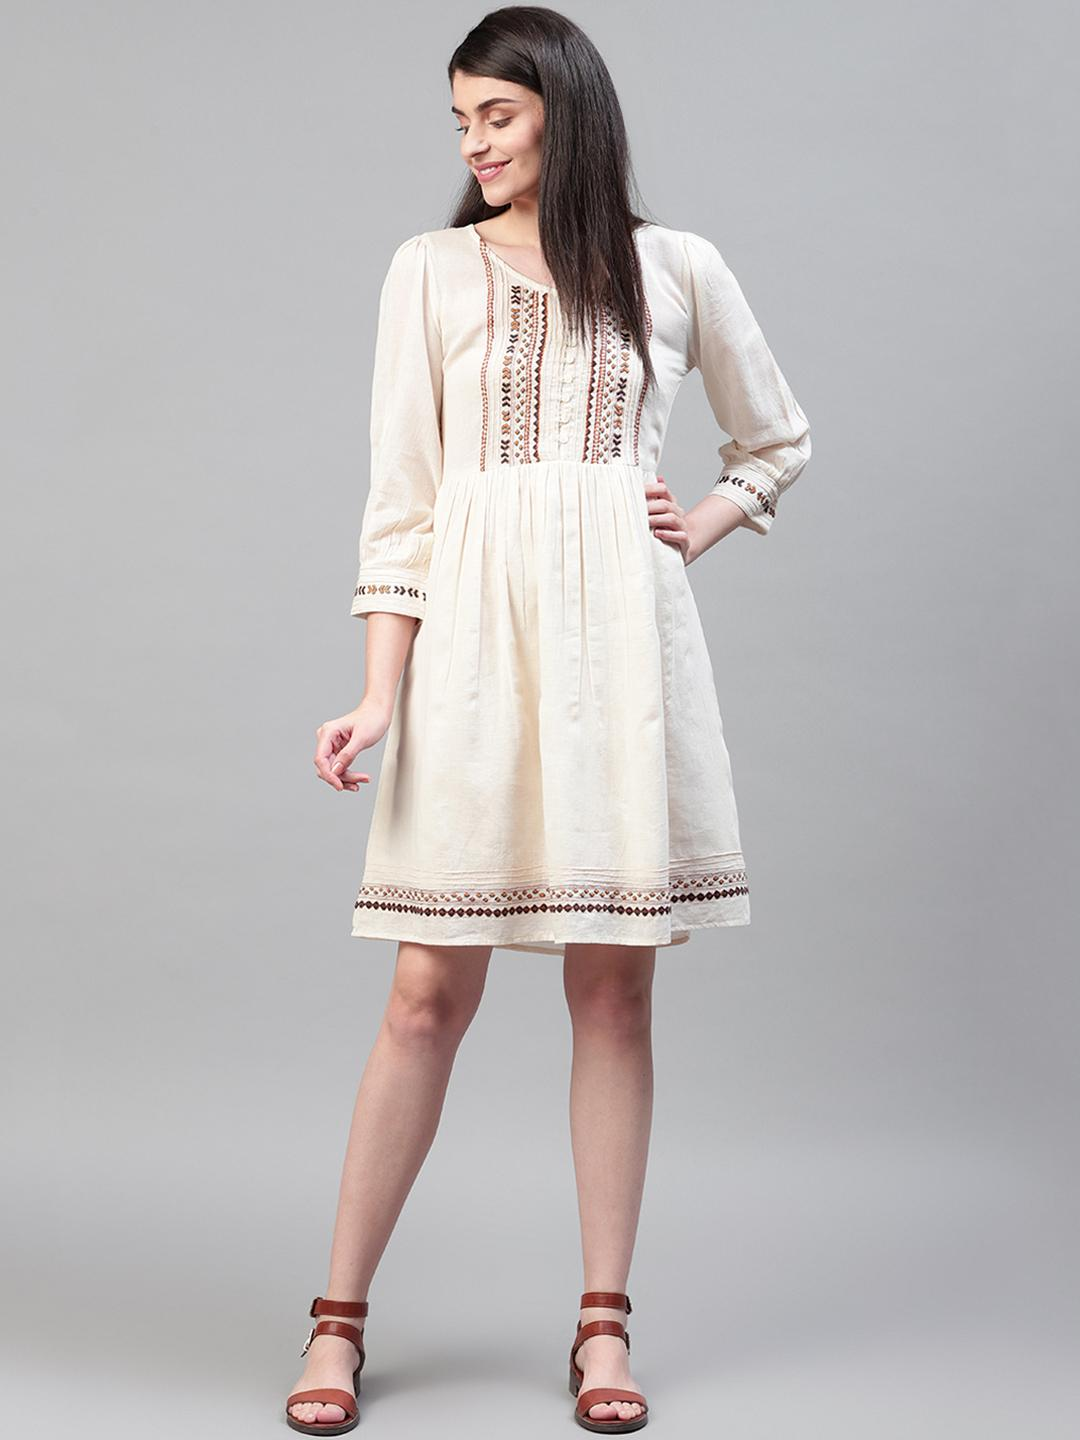 Off-White Cotton Embroidered Dress